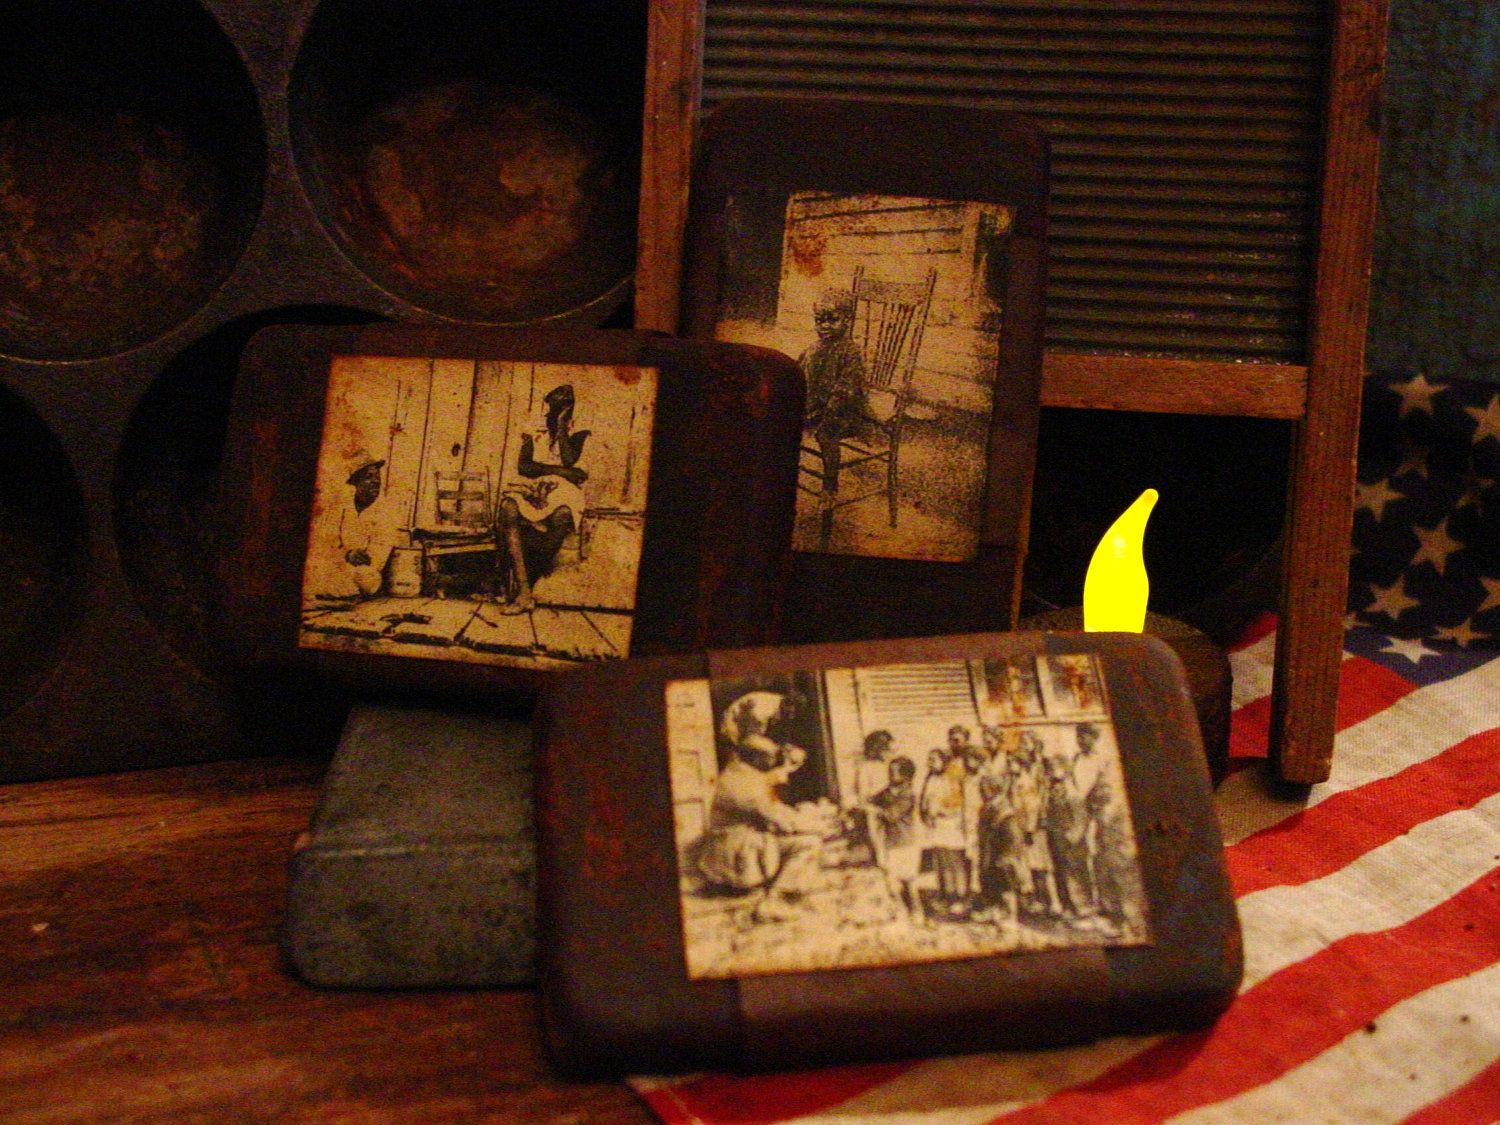 photographs covered in beeswax. love the vintage feel